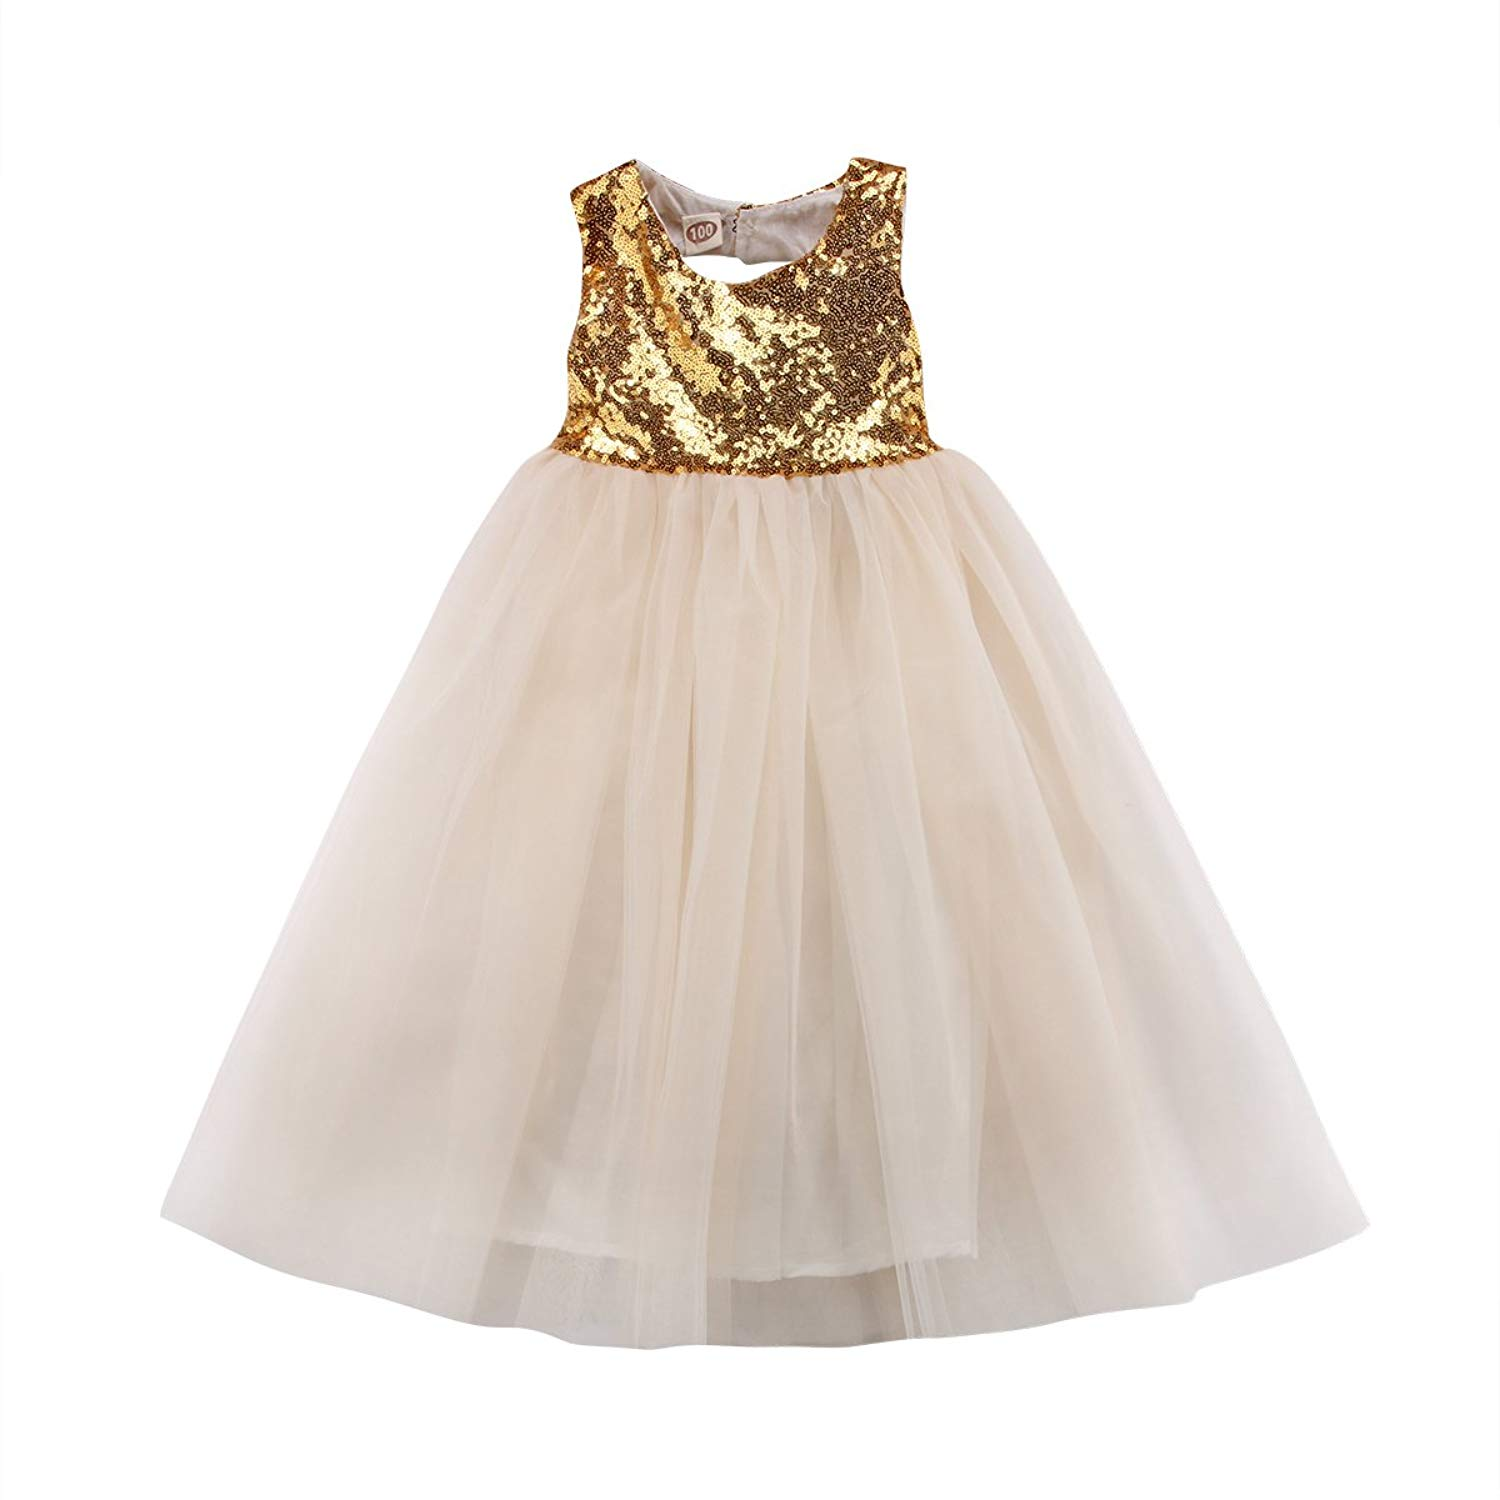 Imcute 2-8 Years Little Girls Kids Sleeveless Sequin Princess Tutu Tulle Dress for Wedding Birthday Party Prom